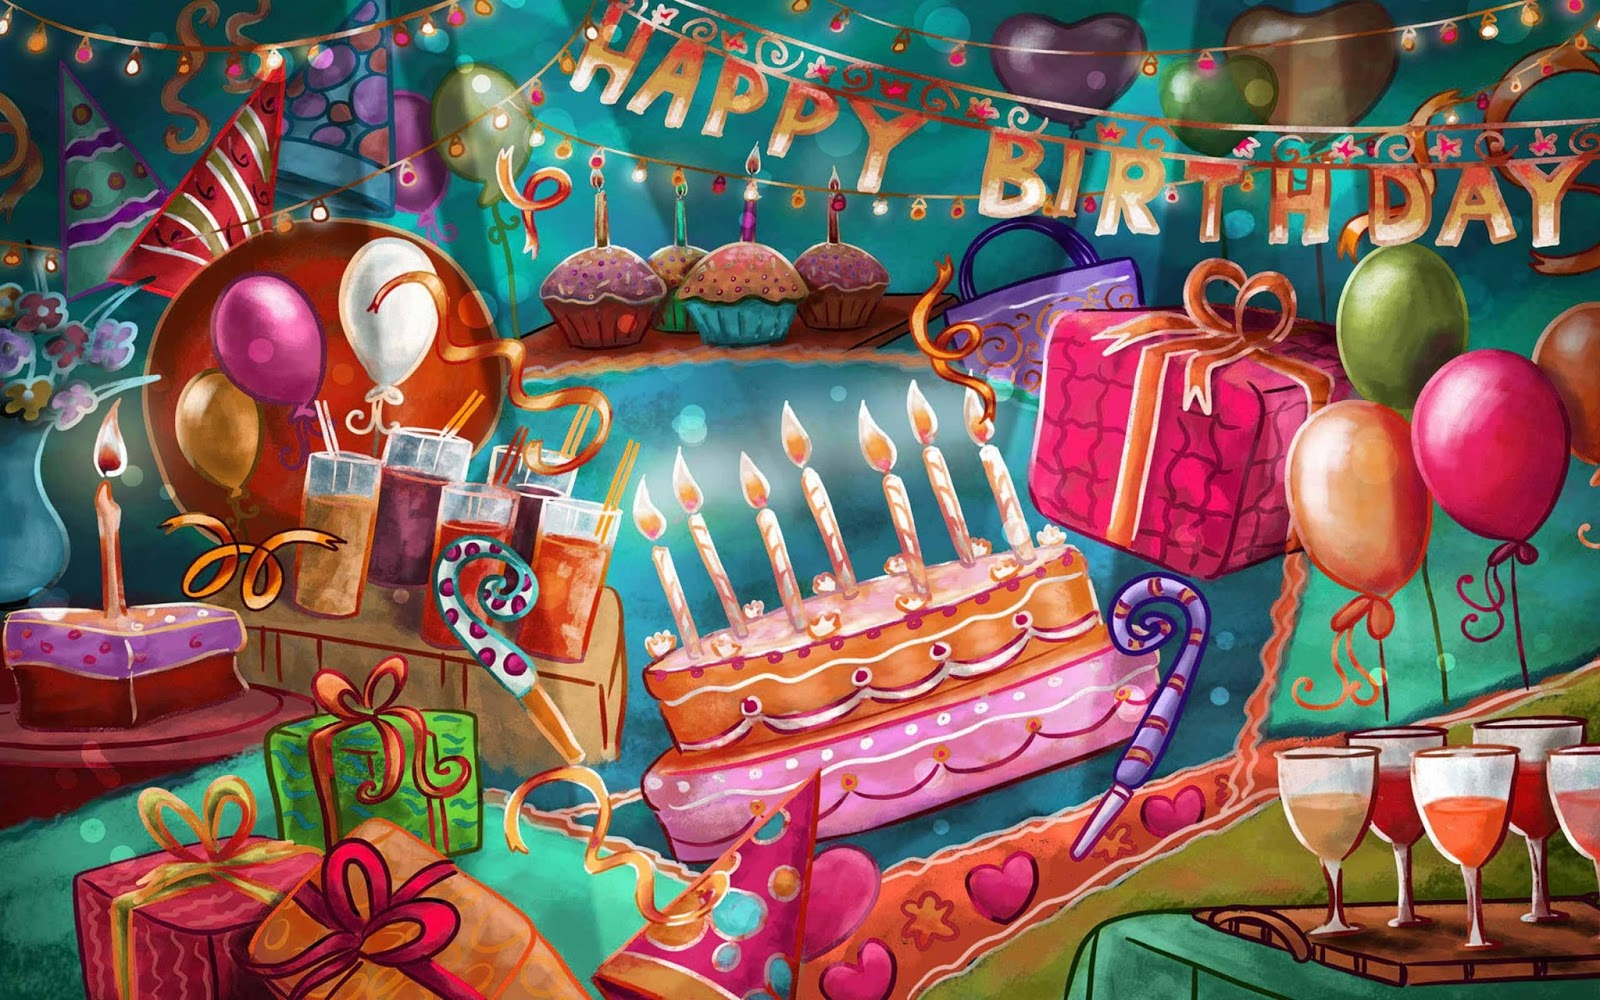 happy birthday greetings wishes high resolution hd 2013 wallpapers free download ~ Full Hd Wall ...